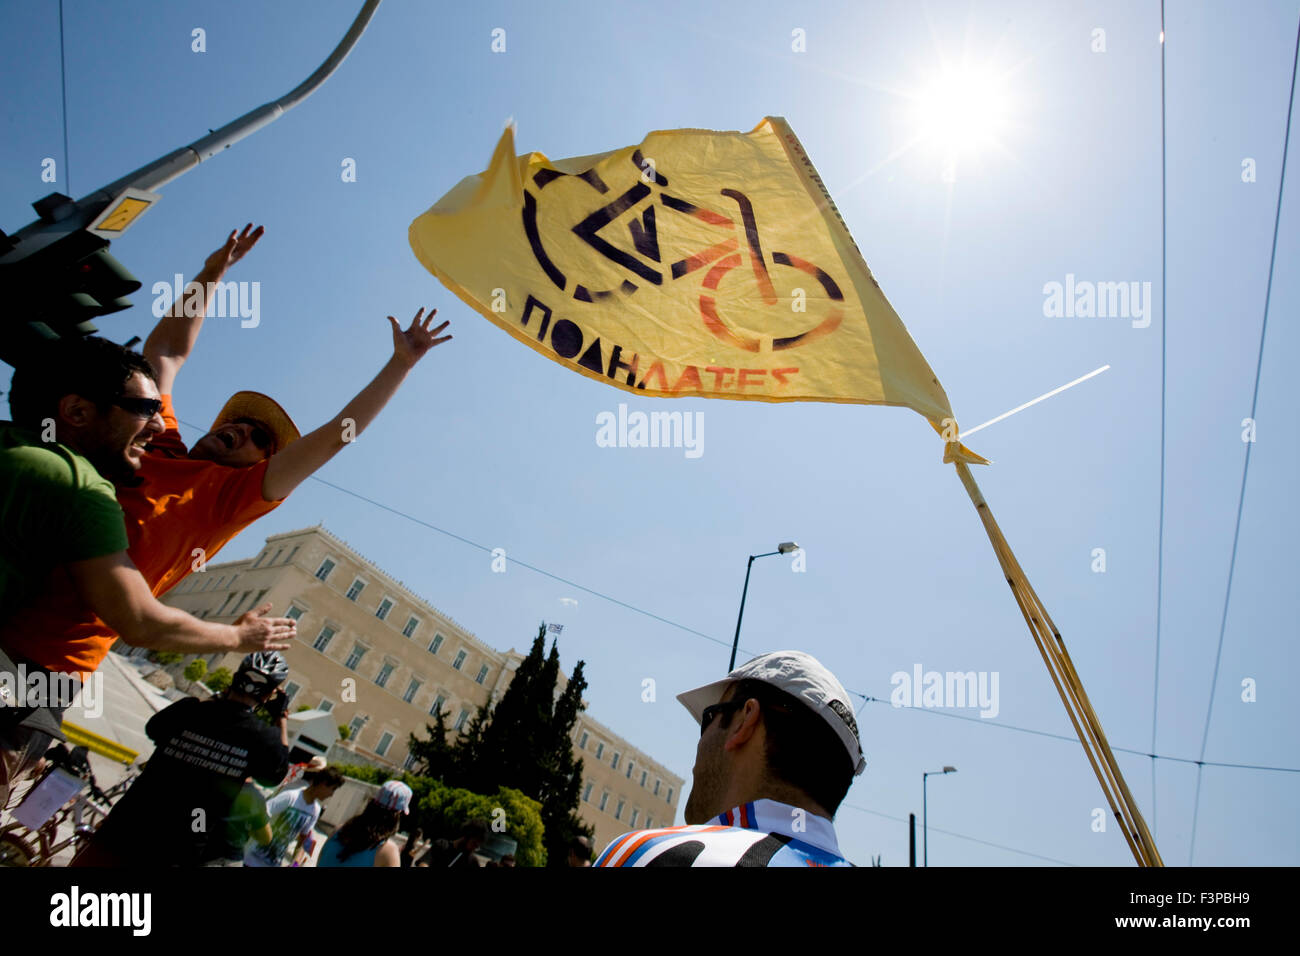 Cyclists wave a bicycle flag during their protest outside Greek Parliament. Syntagma sq., Central Athens, Greece. - Stock Image